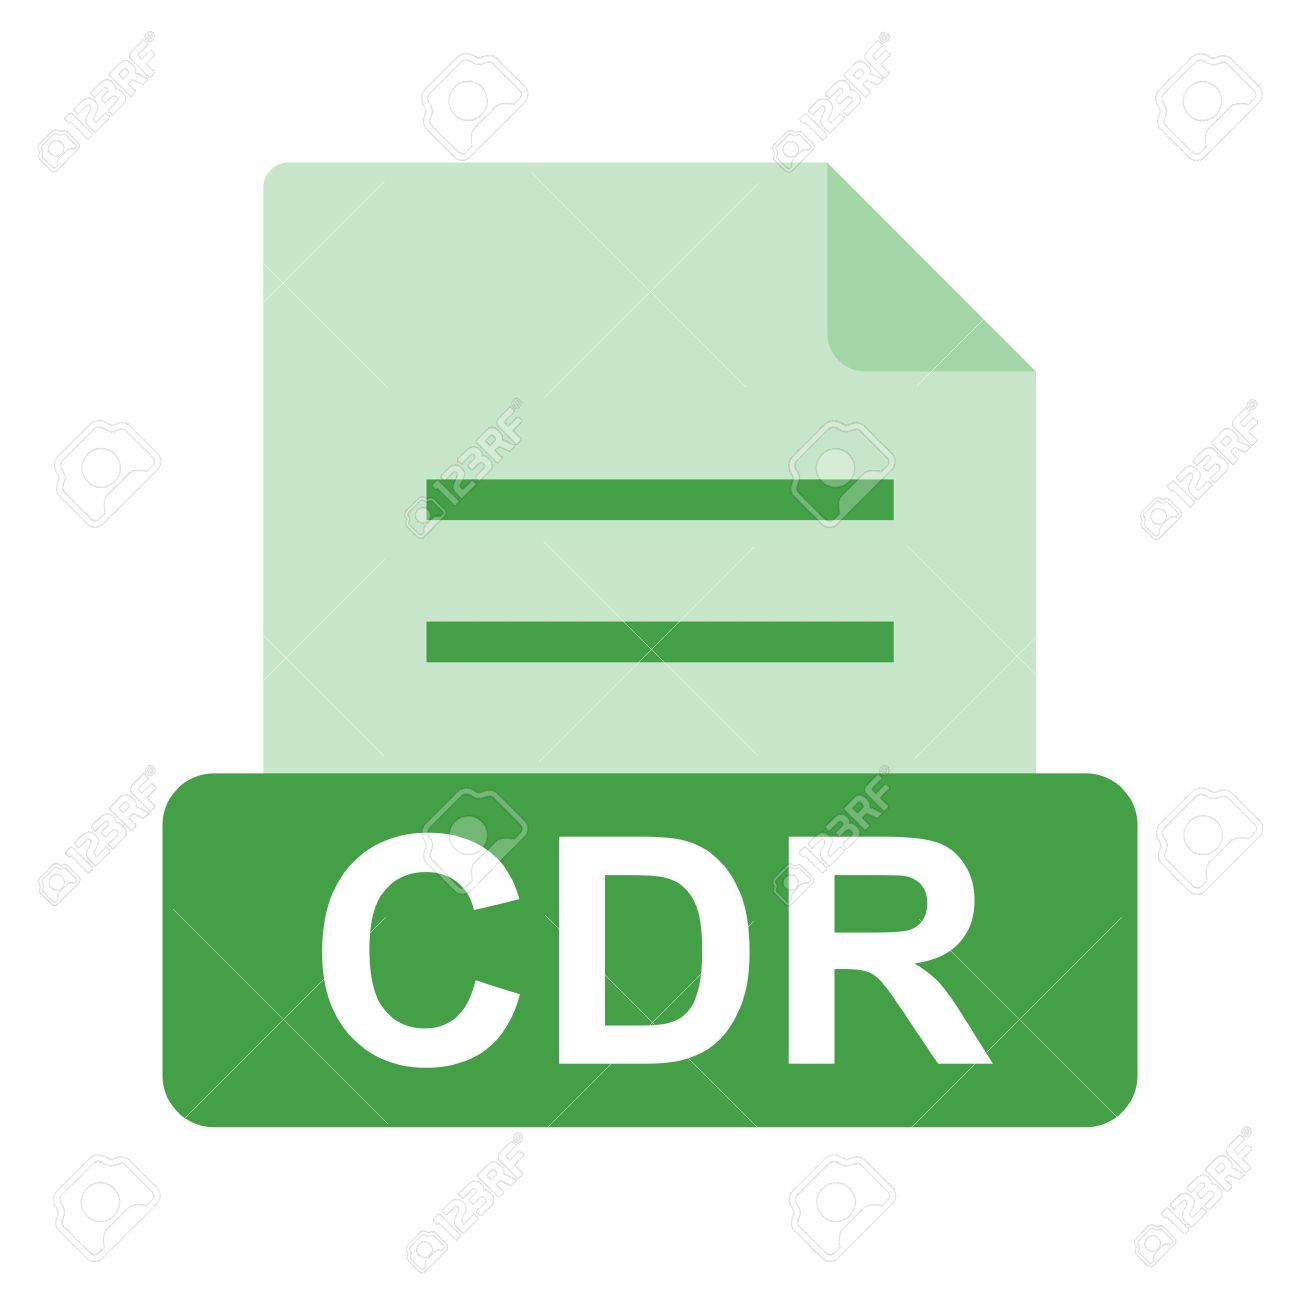 CDR File Icon Royalty Free Cliparts, Vectors, And Stock.